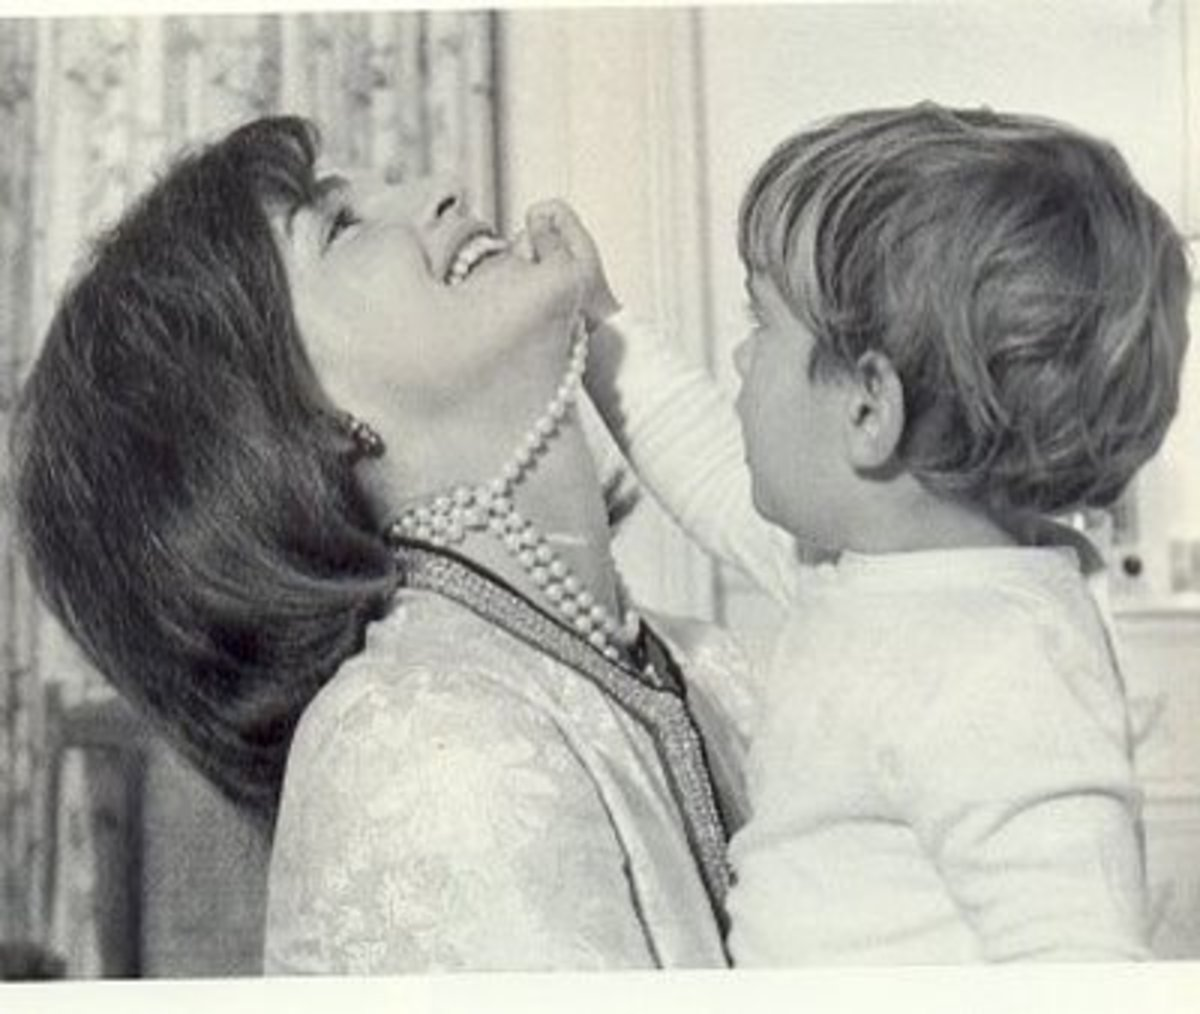 photo of Jackie Kennedy wearing her famous three strand pearl necklace with JFK Jr playing with the necklace